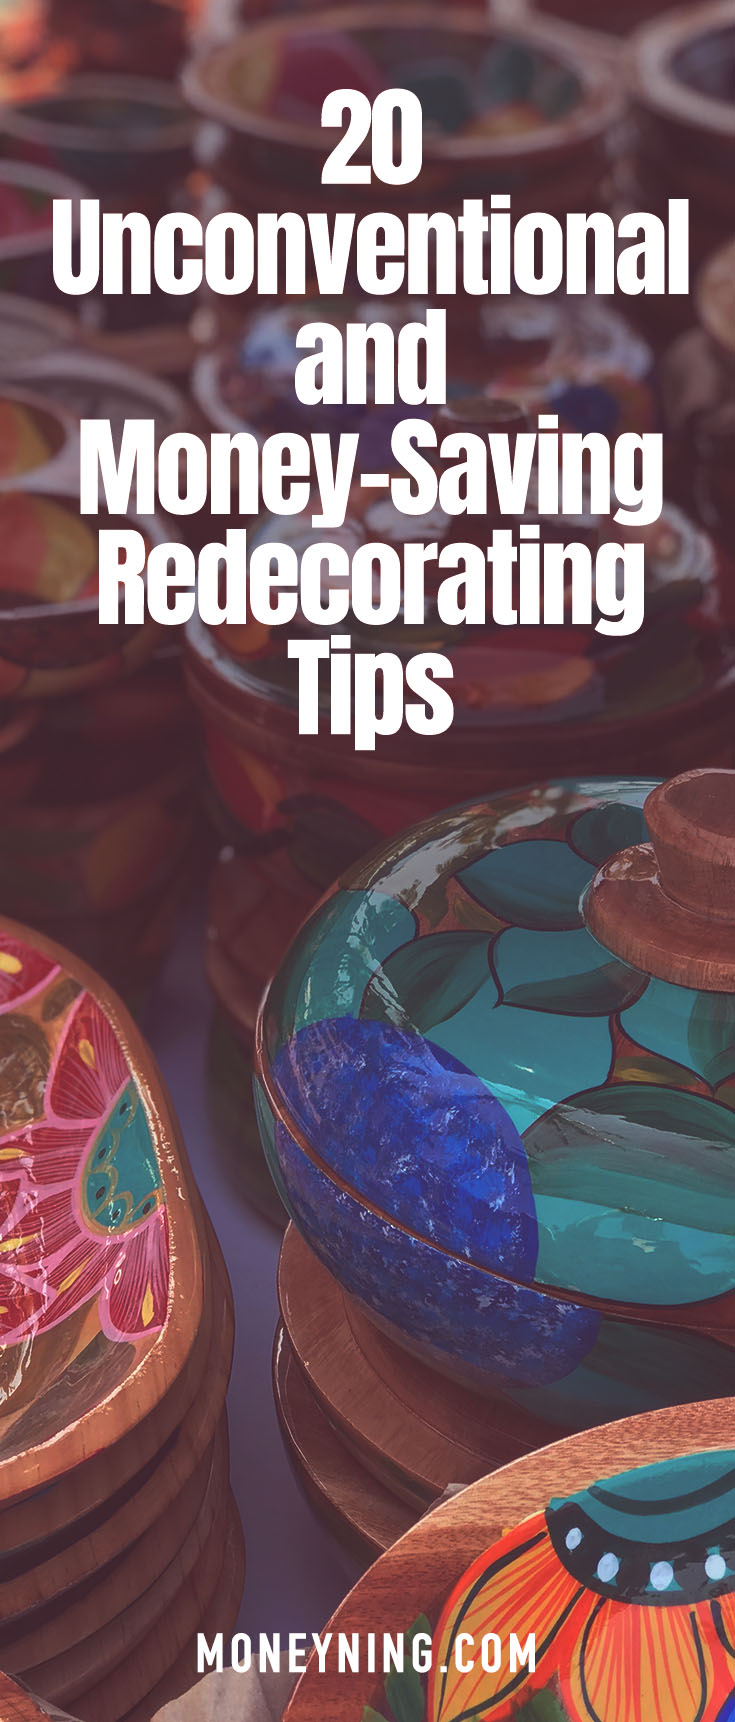 redecorating tips